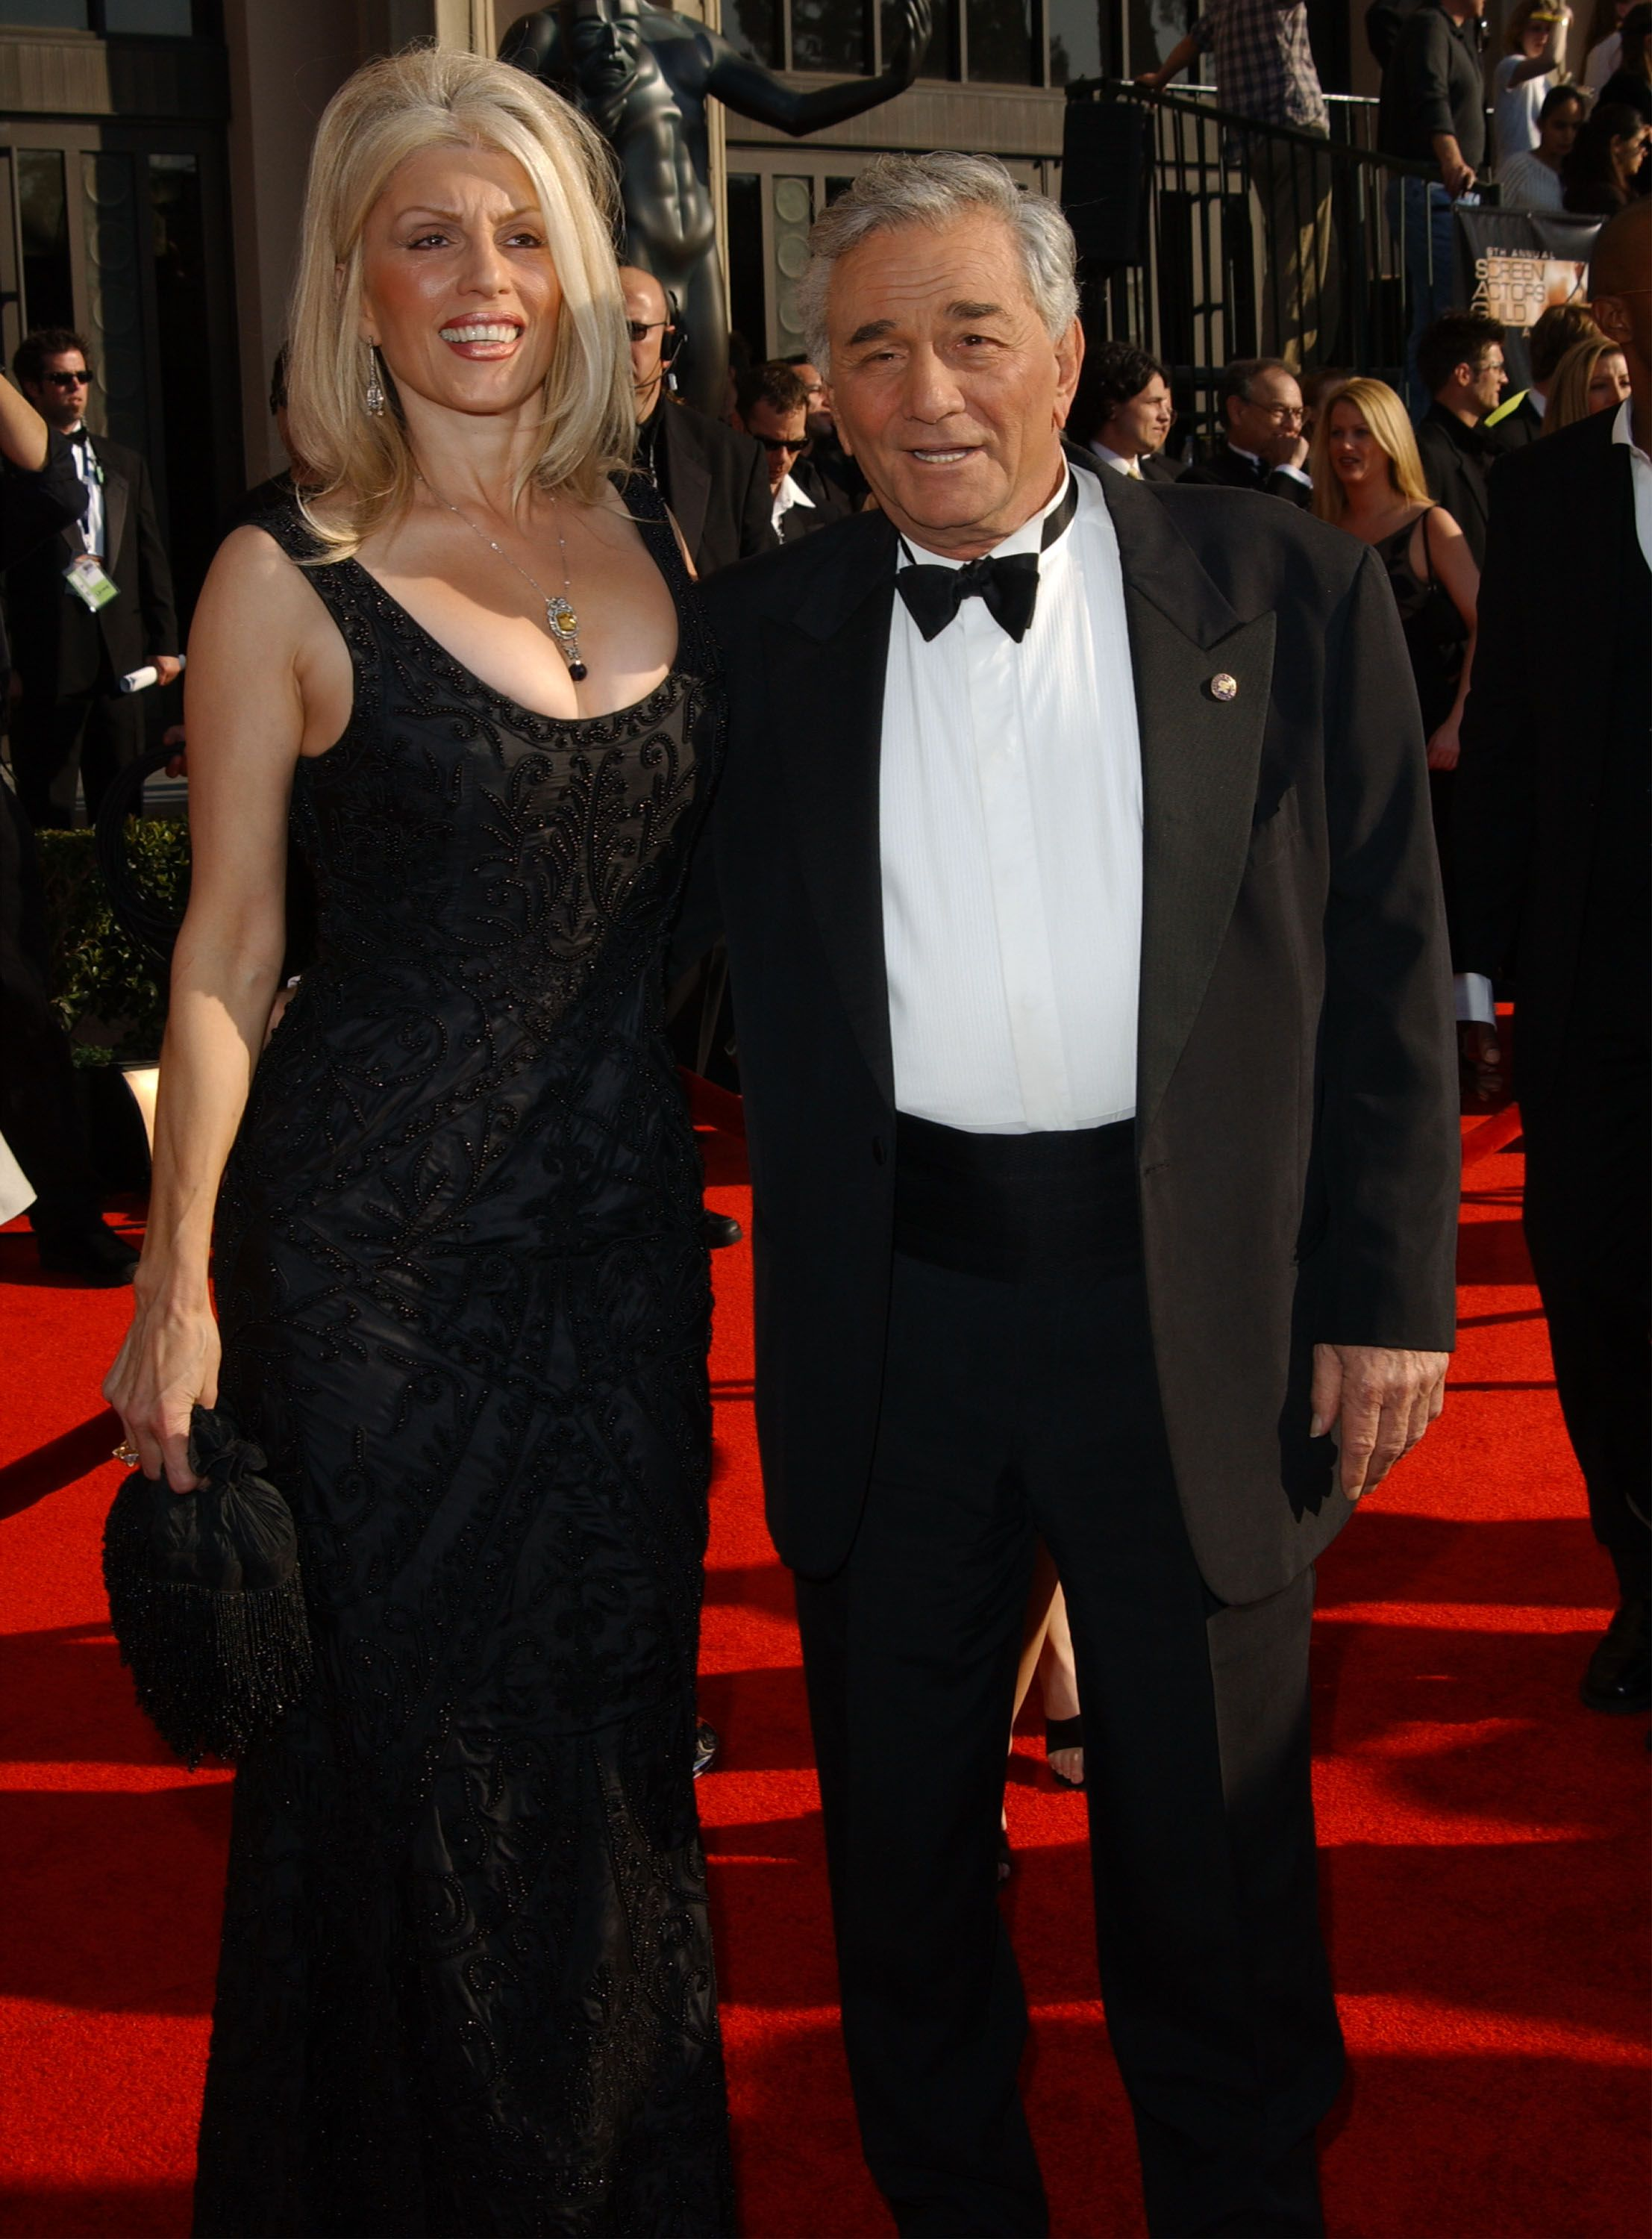 Peter Falk and Shera Danese during the 2003 Screen Actors Guild Awards. | Photo: Getty Images